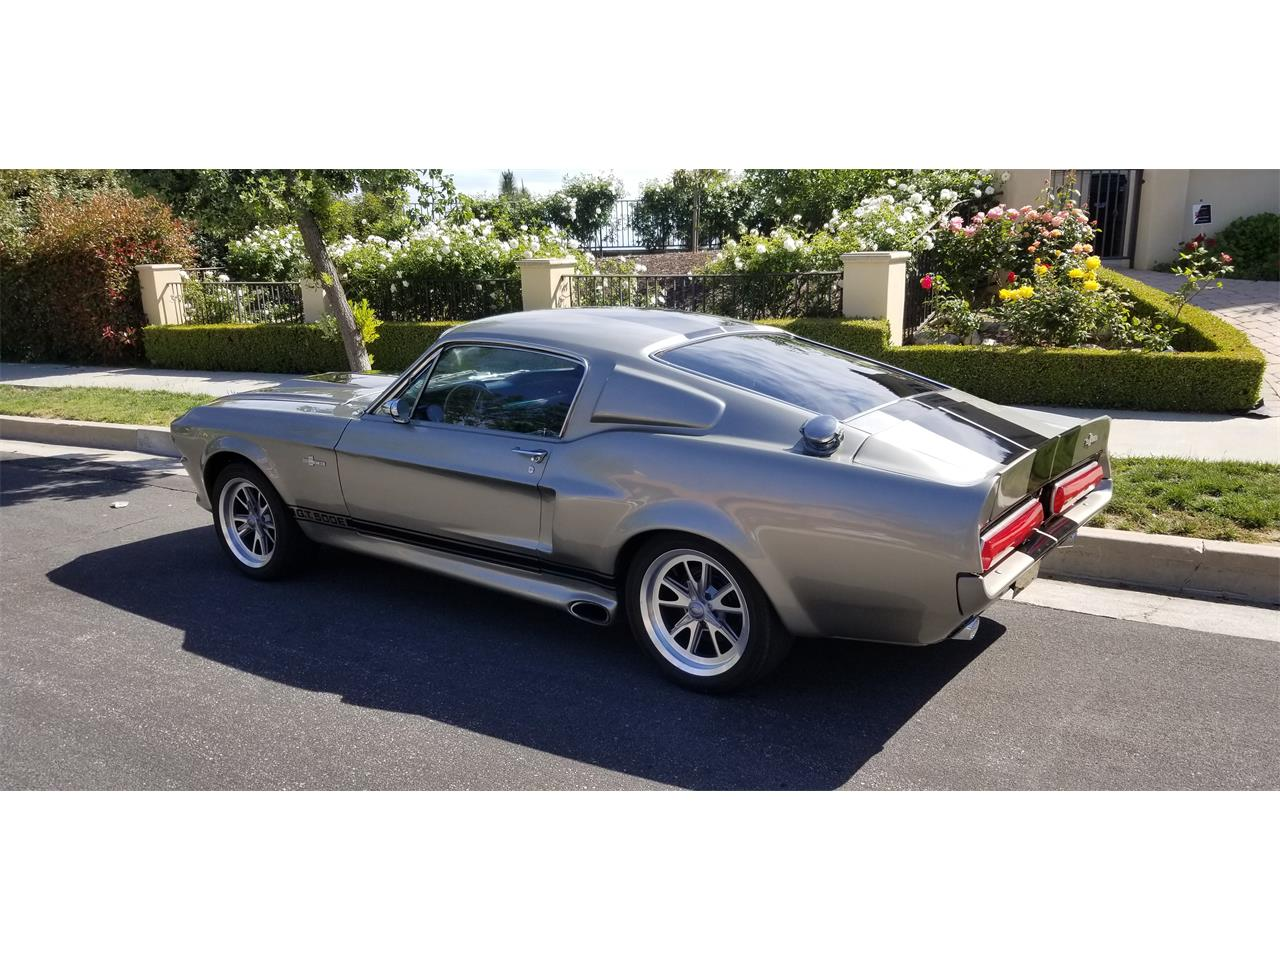 Large Picture of 1968 GT500 located in Van Nuys California - $126,000.00 Offered by a Private Seller - Q0YD